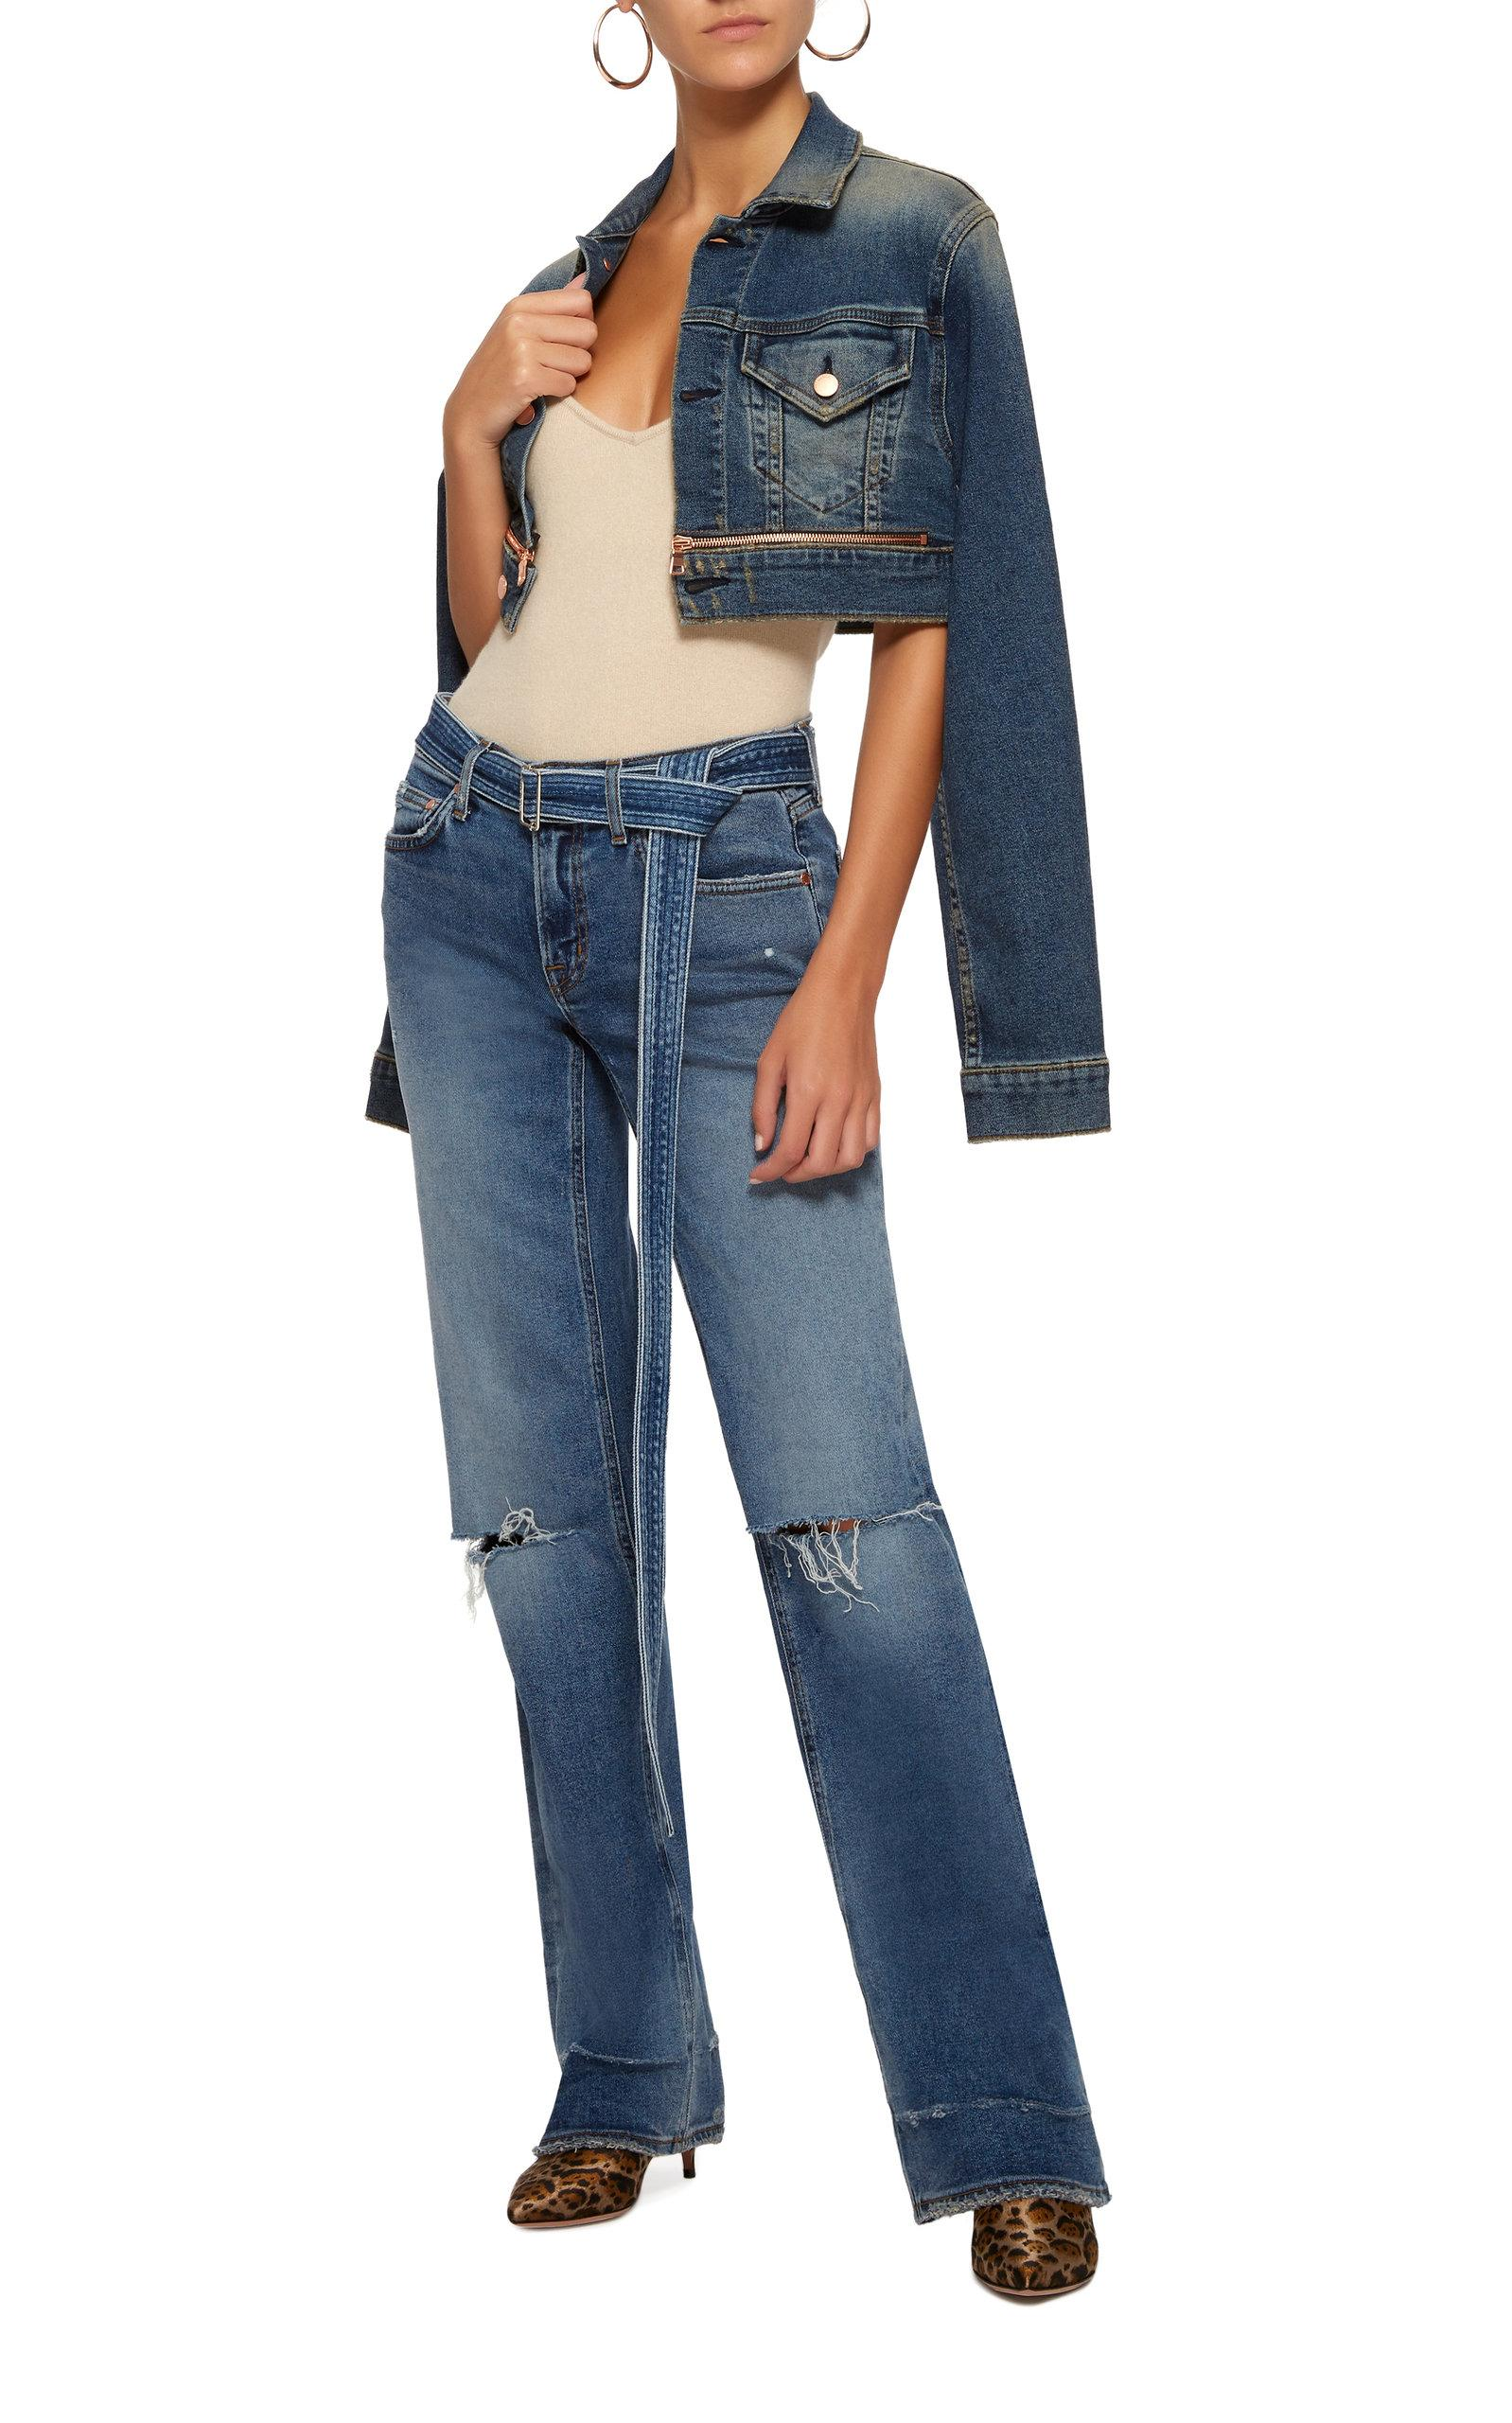 a25f9dc4880f51 Cotton Citizen - Blue Super Crop Denim Jacket - Lyst. View fullscreen